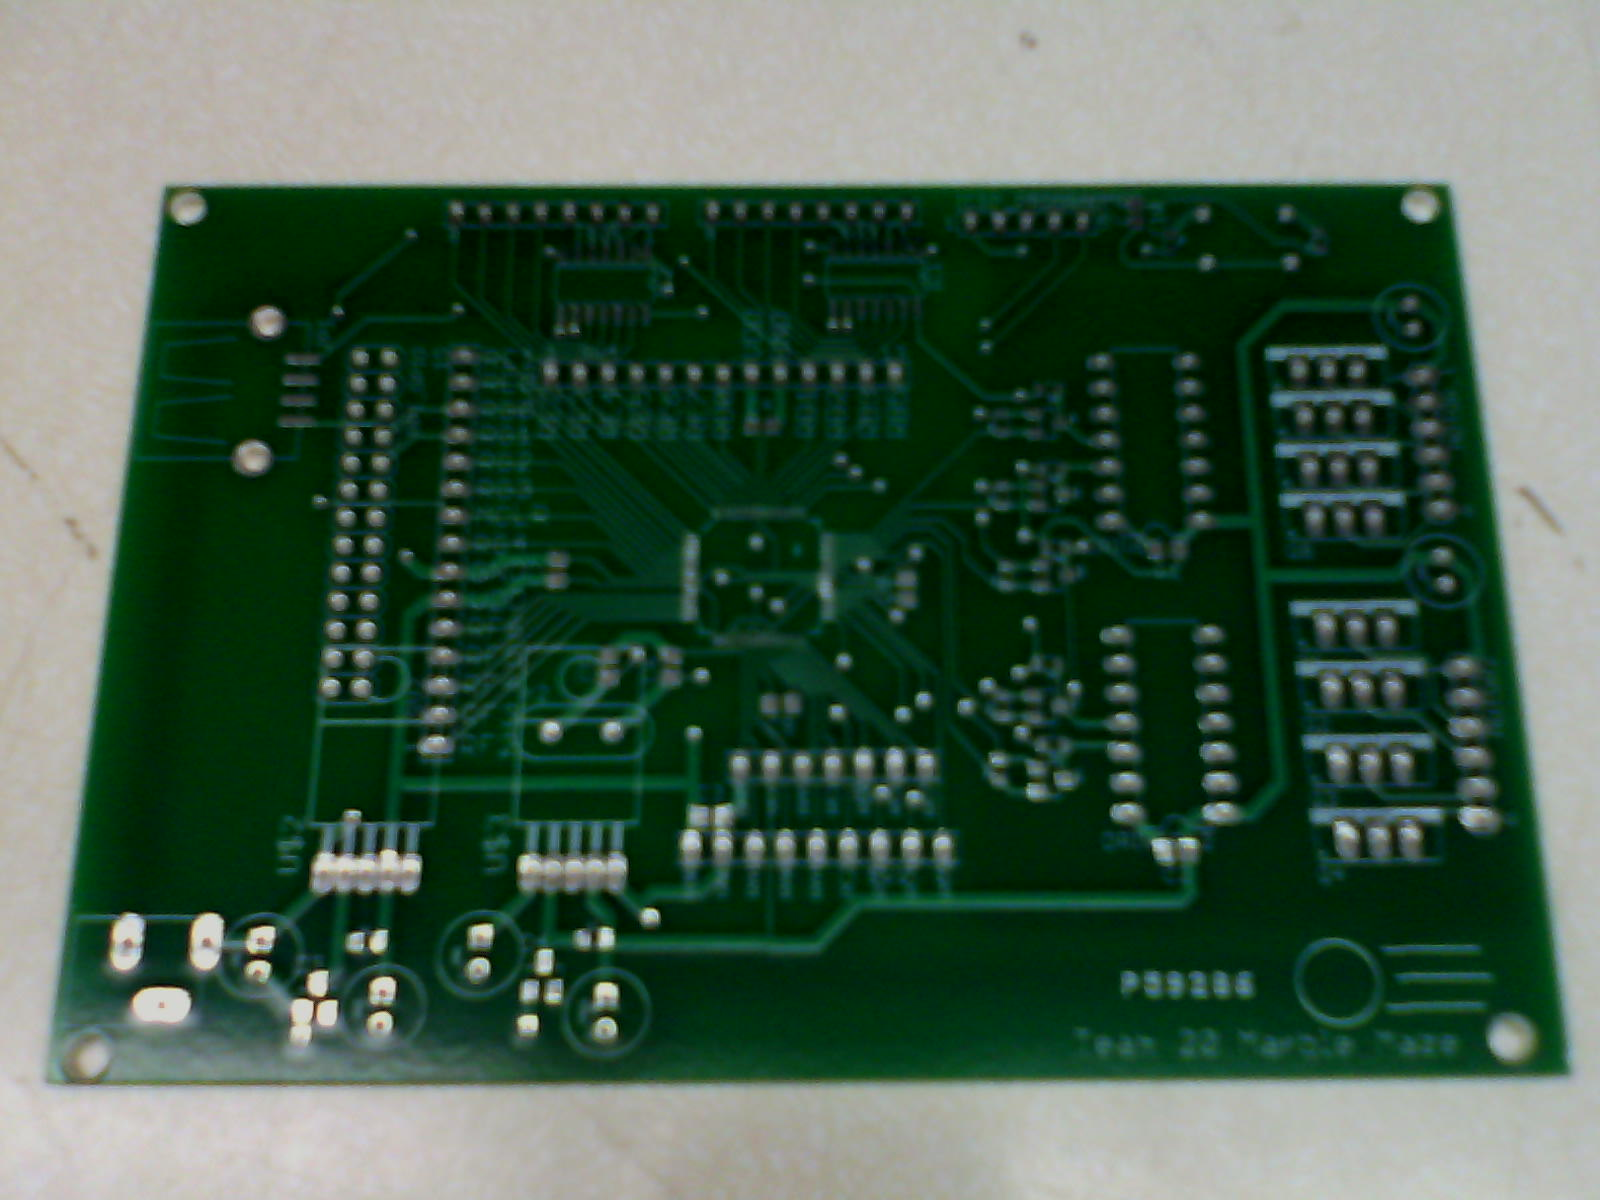 Justin Spencers Lab Notebook Holes Are Drilled In A Sample Circuit Board At Positions Required For Experimented With Physically Increasing The Size Of Pcb Header Pin Considered Drilling Out To Increse Their But Decided Try